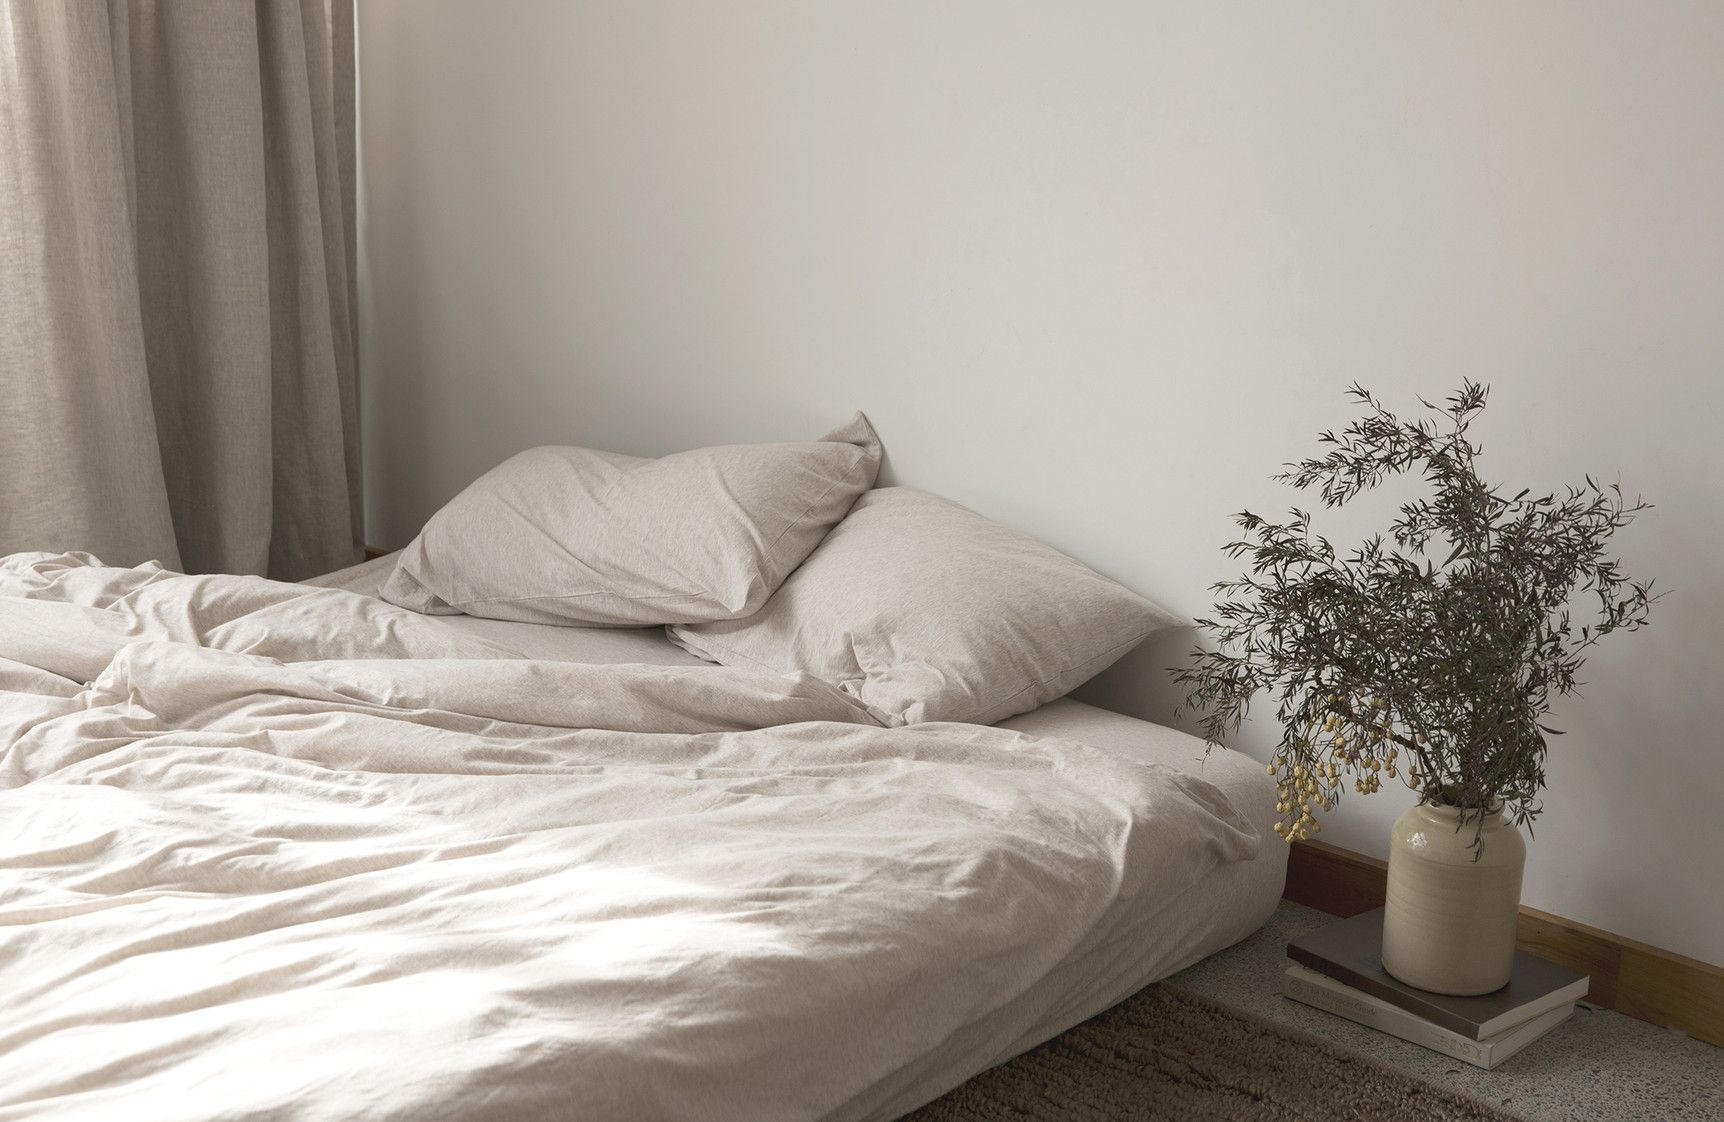 A new range of beautifully soft, natural Cotton Jersey